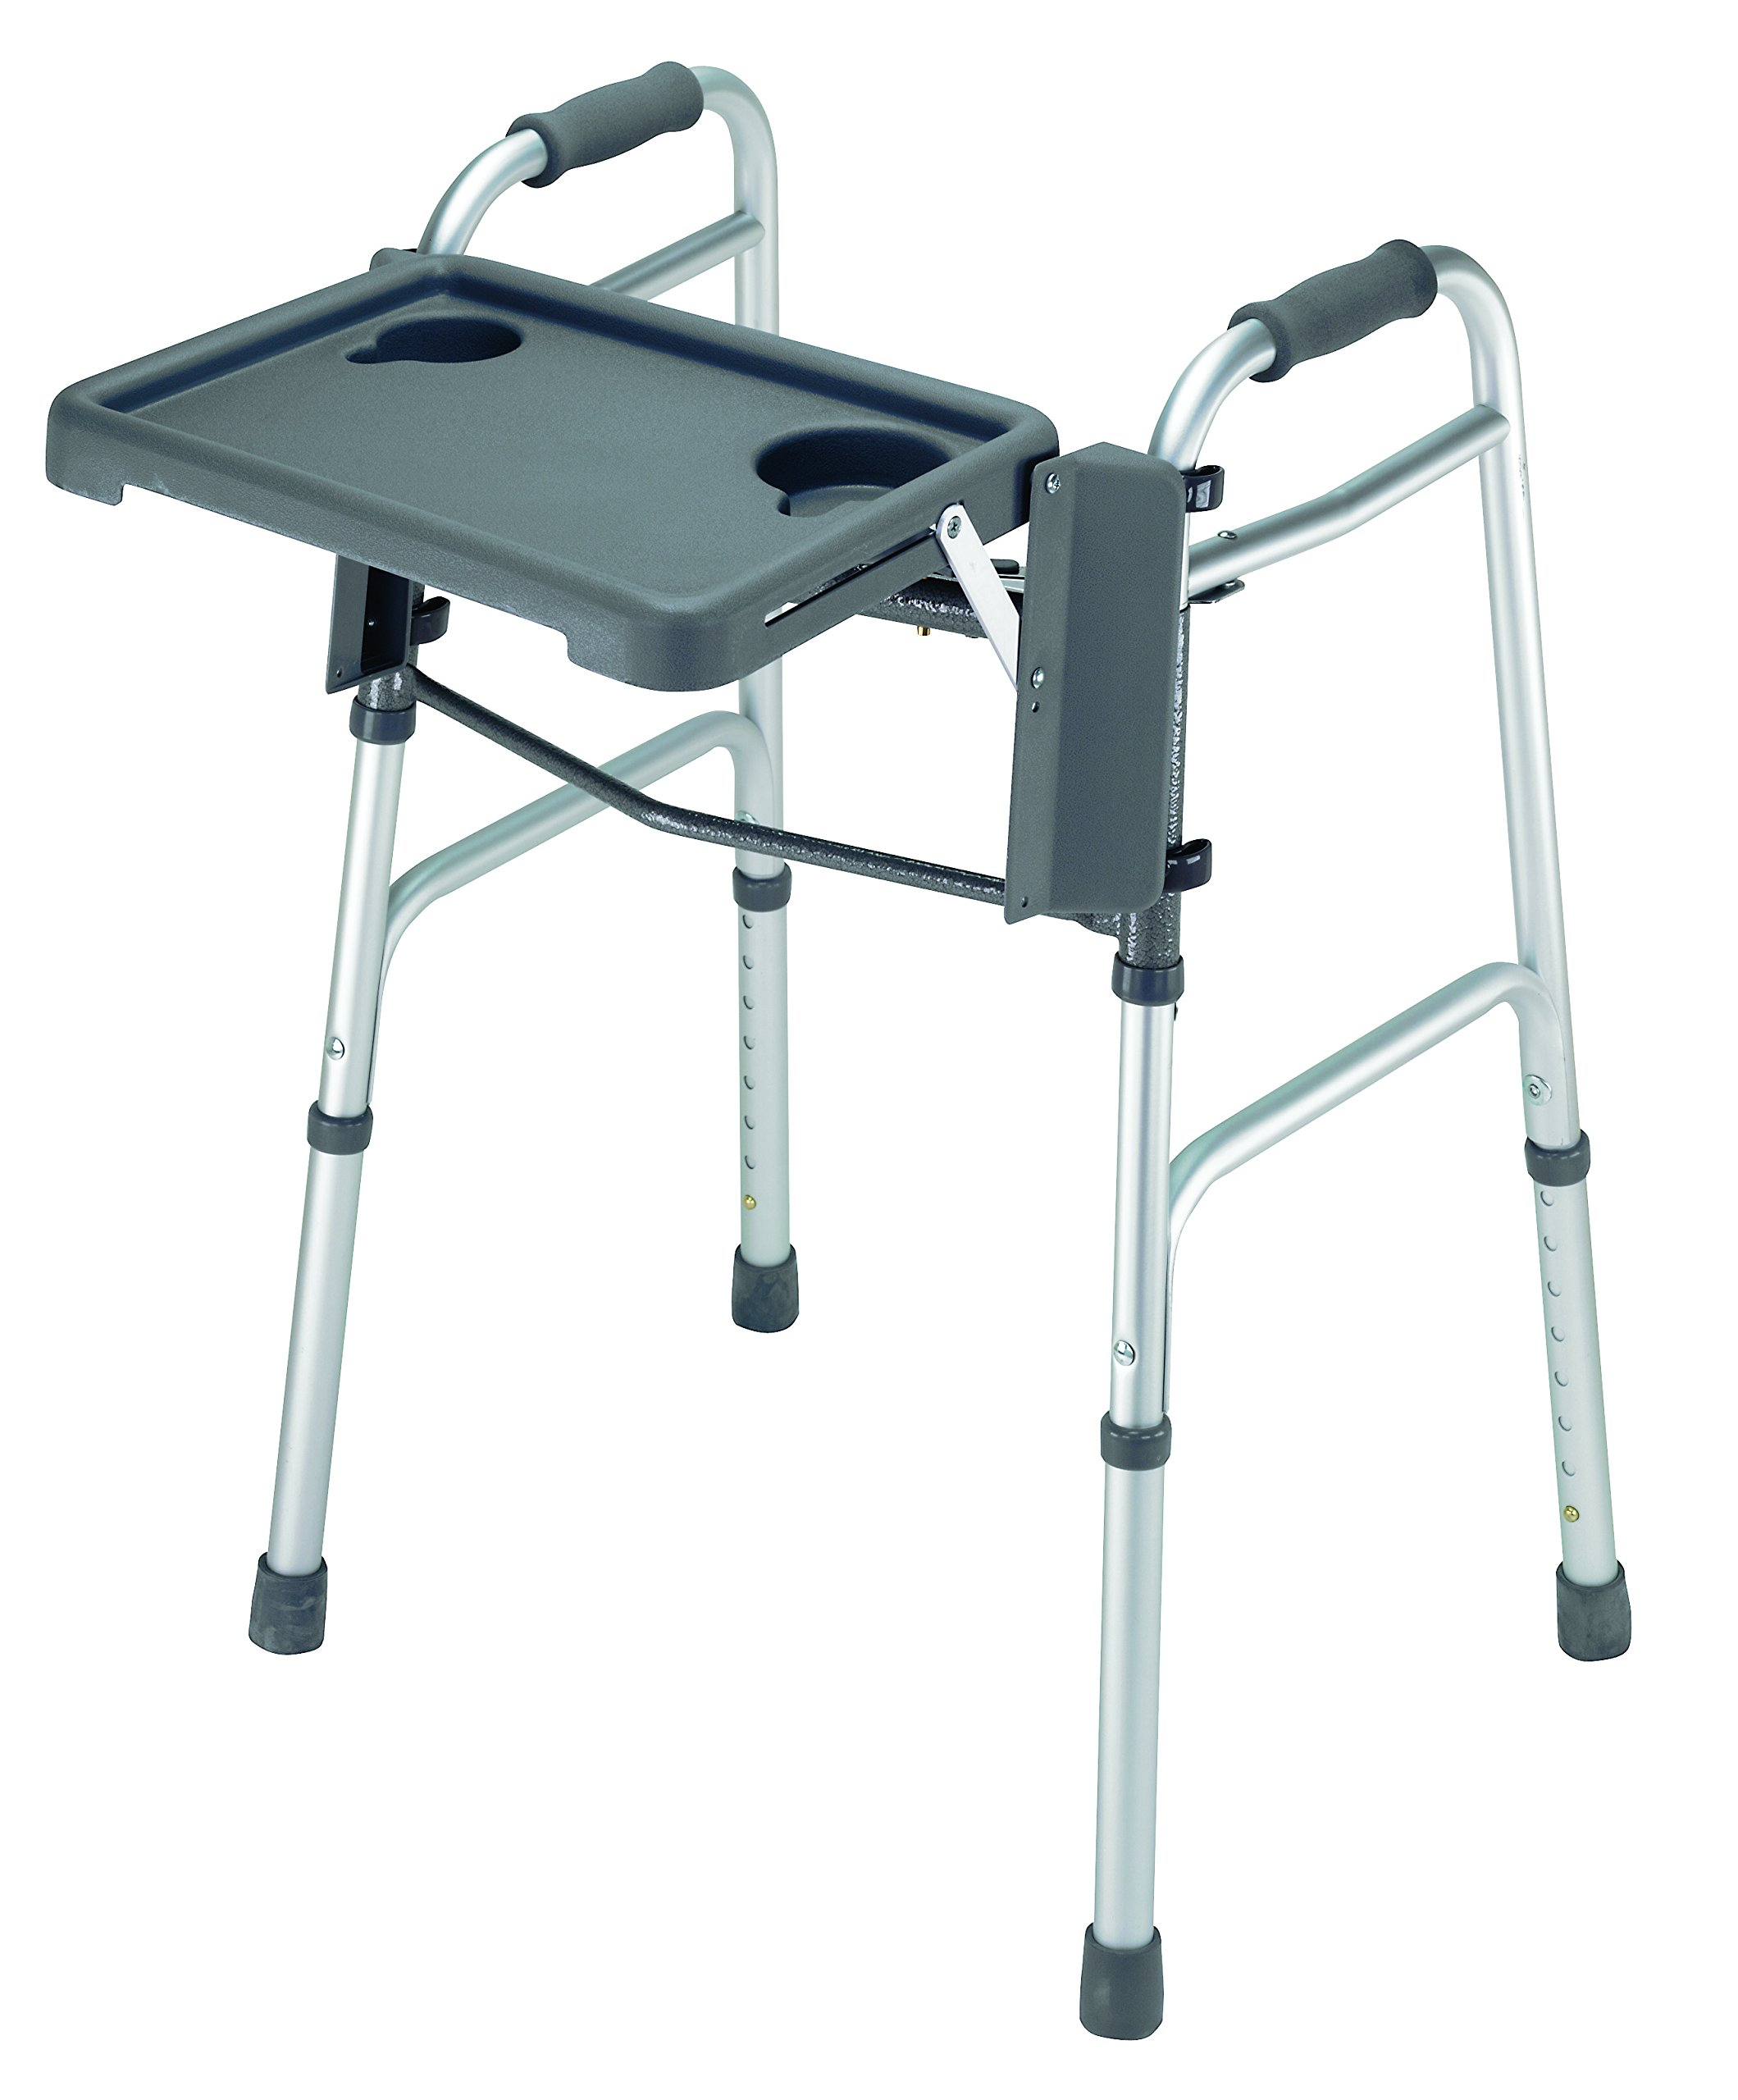 Briggs Healthcare Fold Away Tray For Walker - 16''W X 11 3/4''D